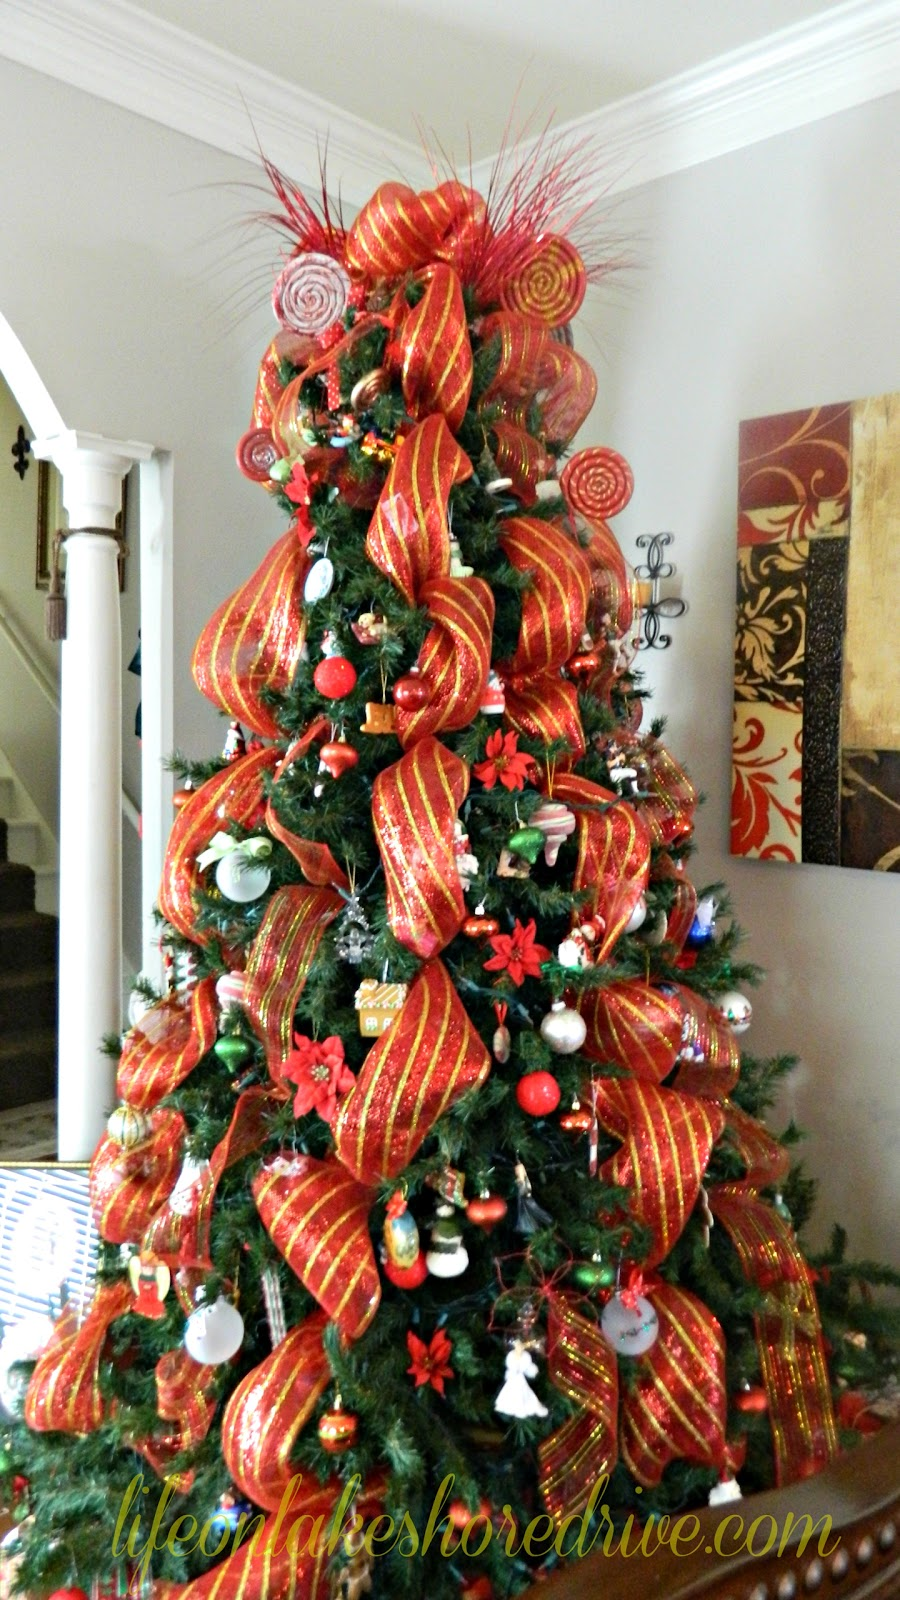 Christmas tree decorations with mesh - photo#54